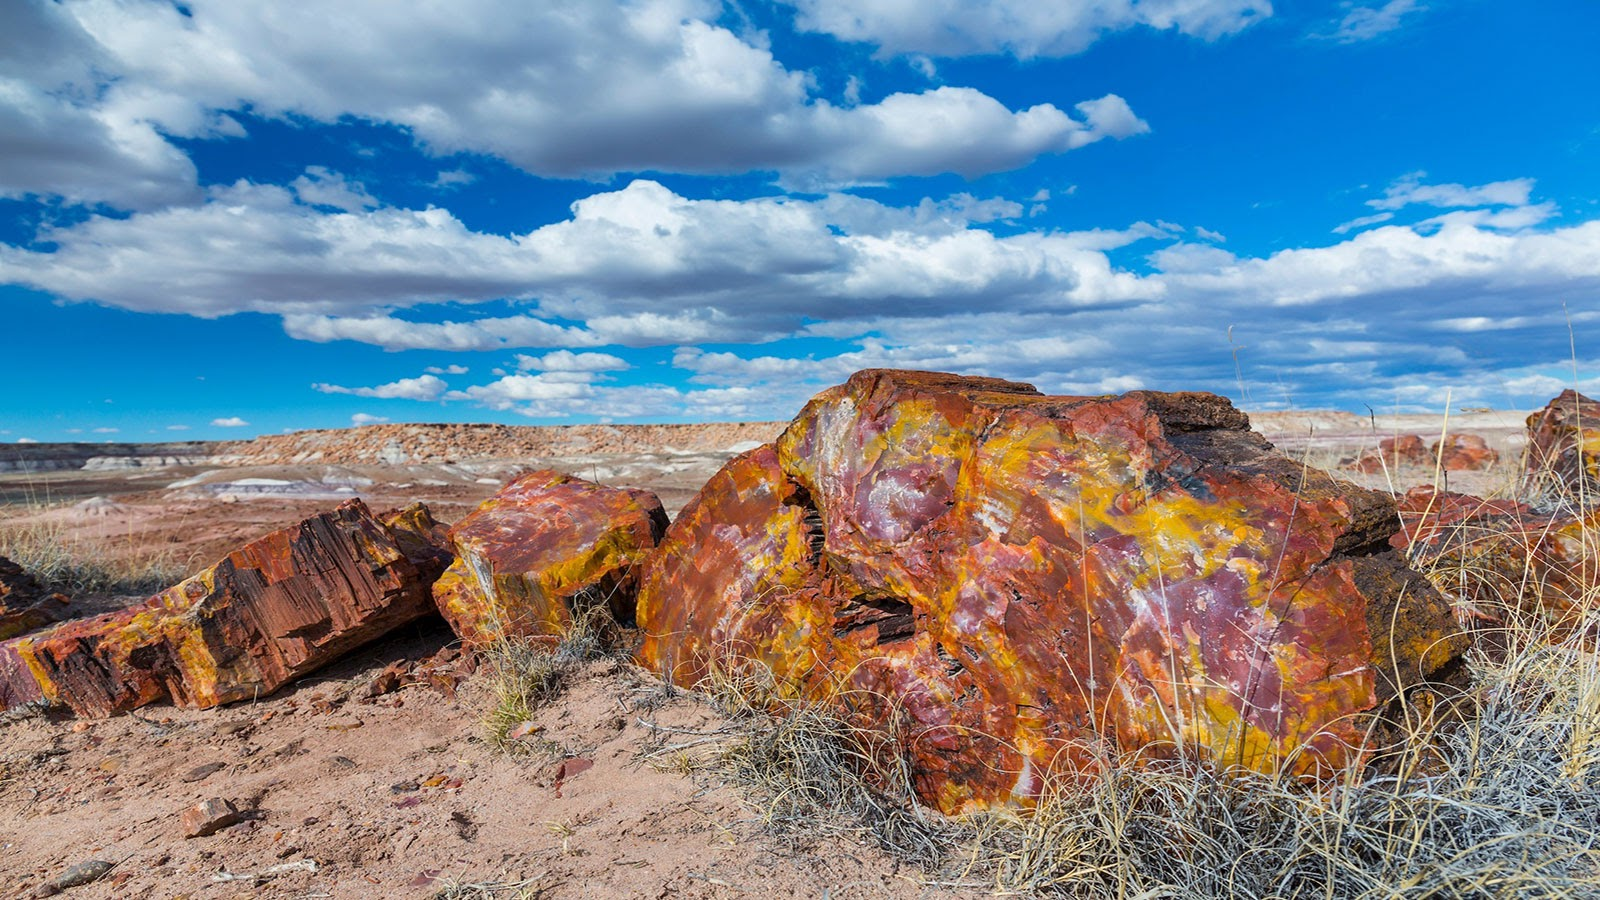 石化林国家公园 Petrified Forest National Park, AZ